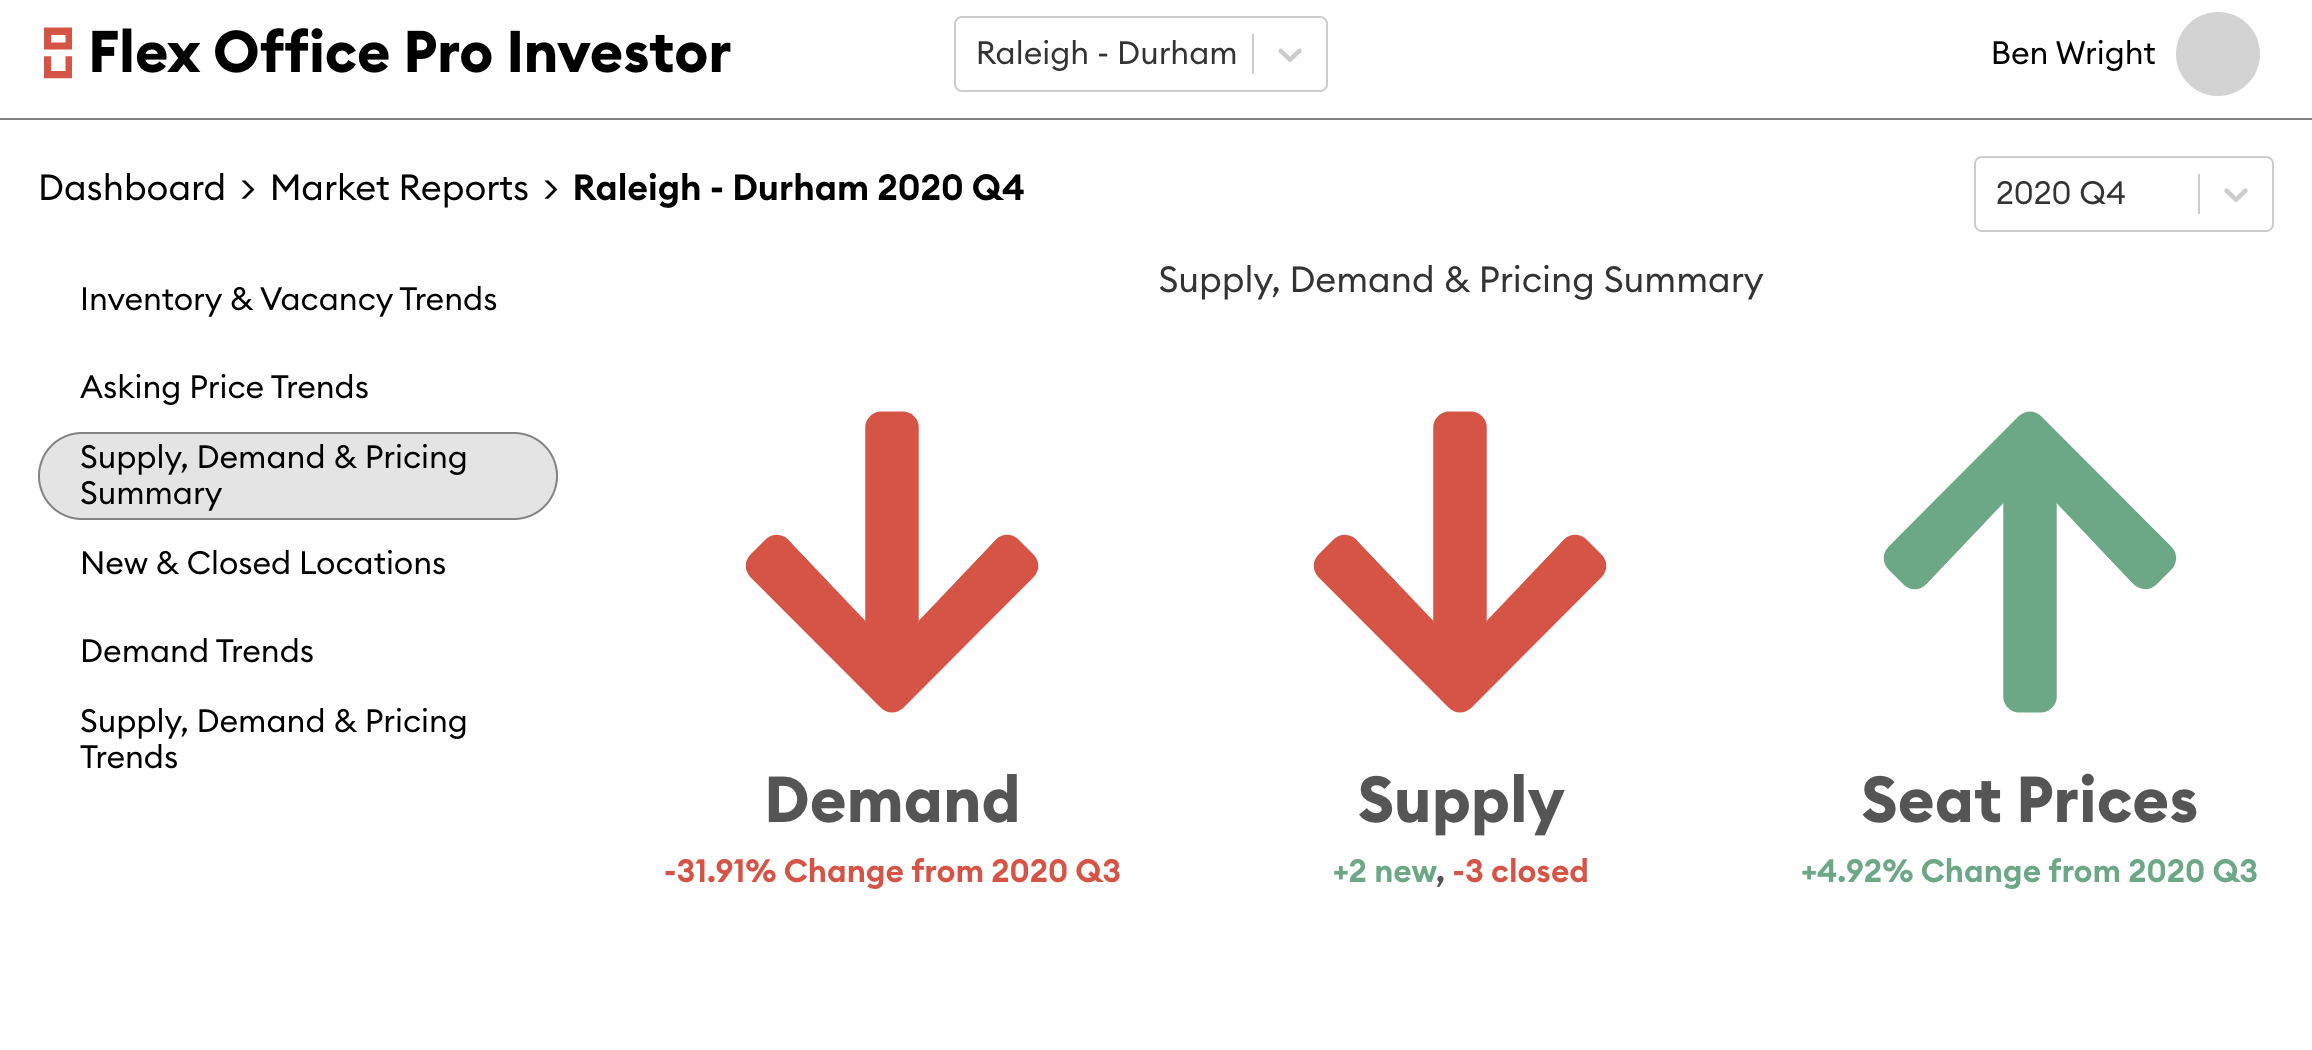 Supply, Demand and Pricing Summary